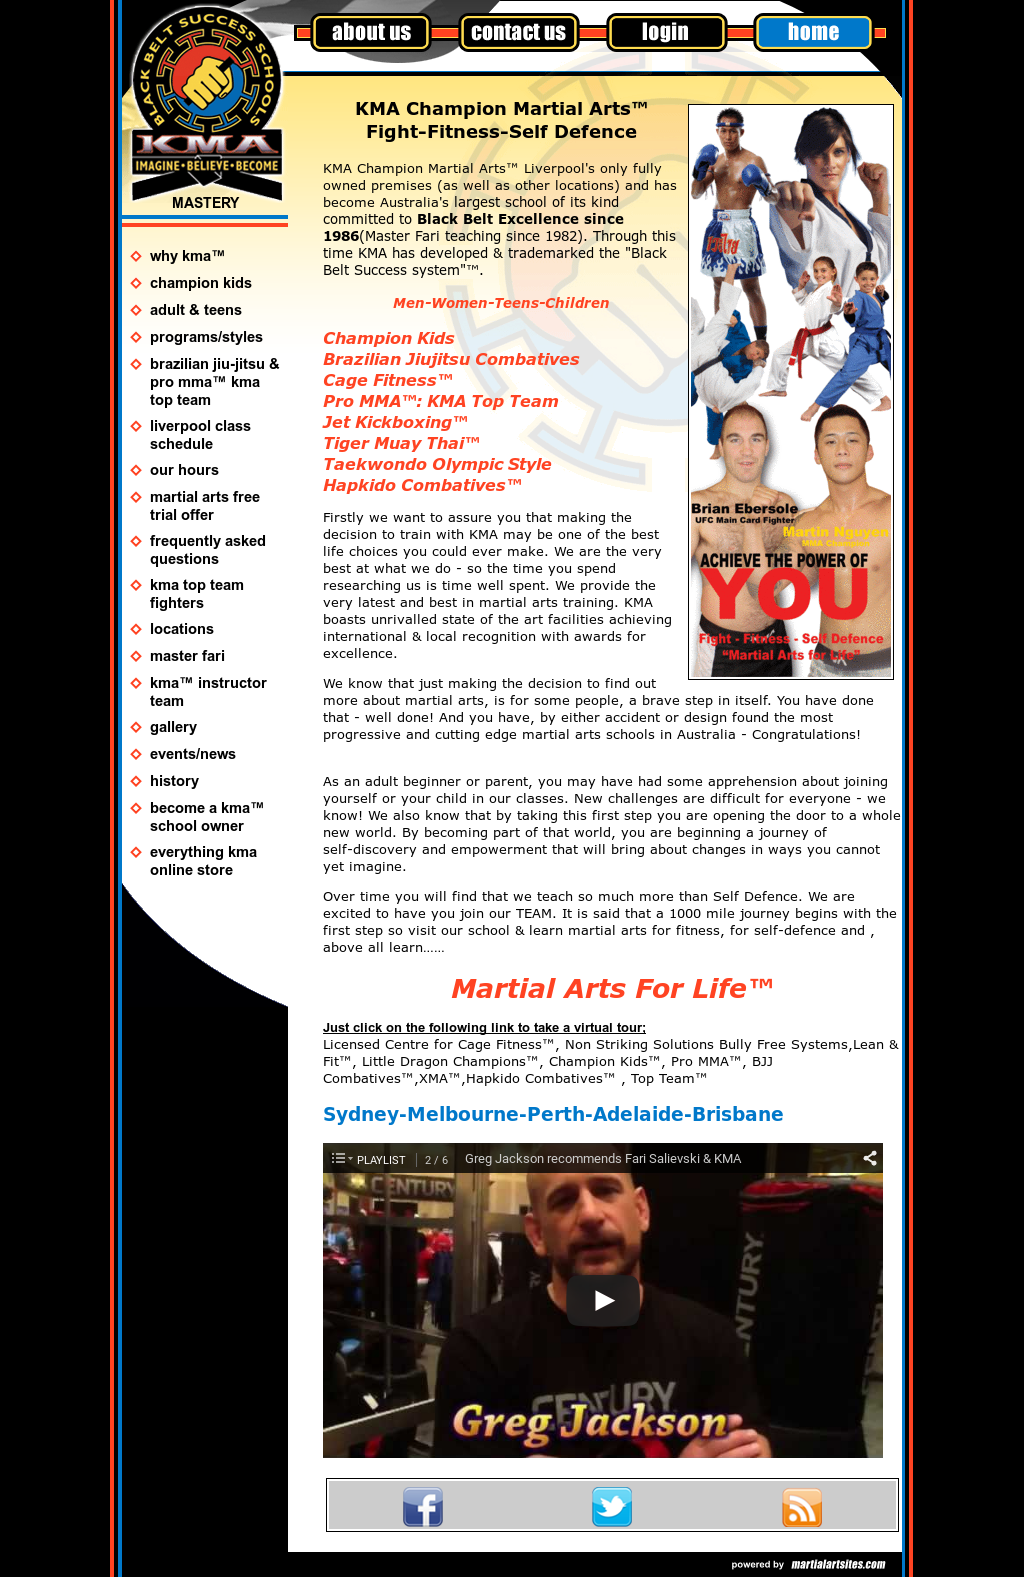 Kma- Martial Arts For Life Competitors, Revenue and Employees